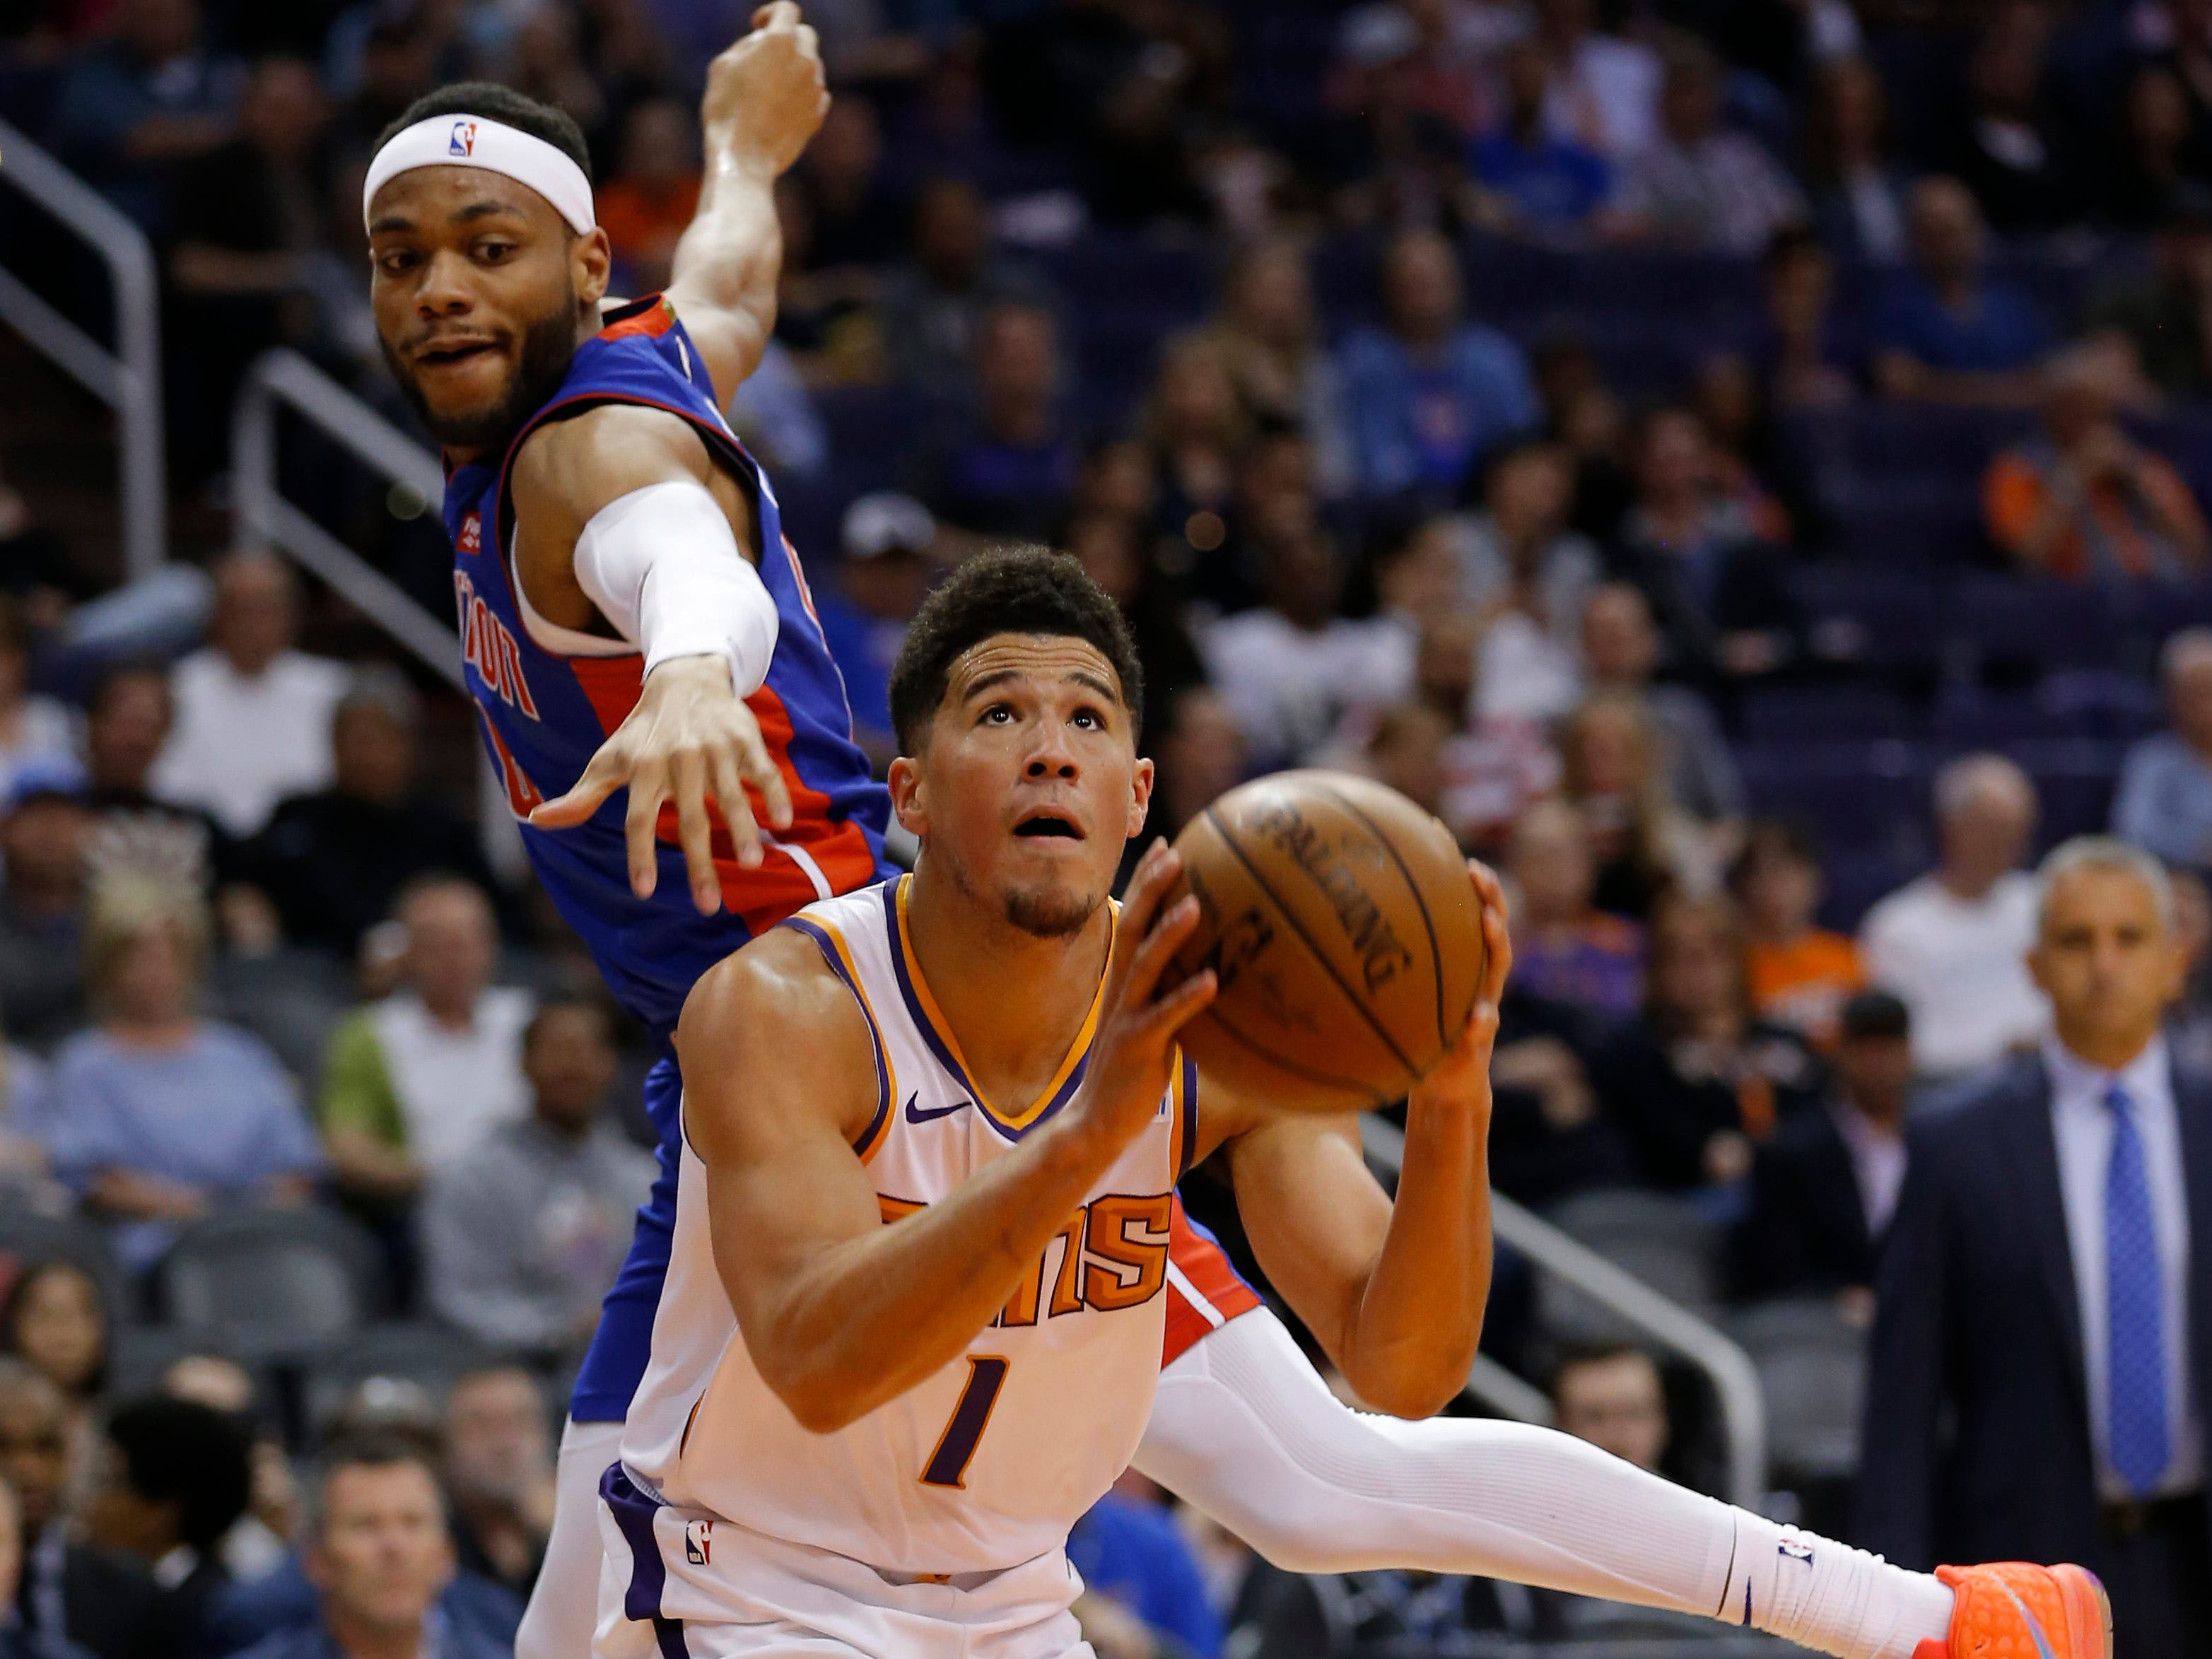 Mar 21, 2019; Phoenix, AZ, USA; Phoenix Suns guard Devin Booker (1) gets pressured by Detroit Pistons guard Bruce Brown (6) in the first half during an NBA basketball game at Talking Stick Resort Arena.